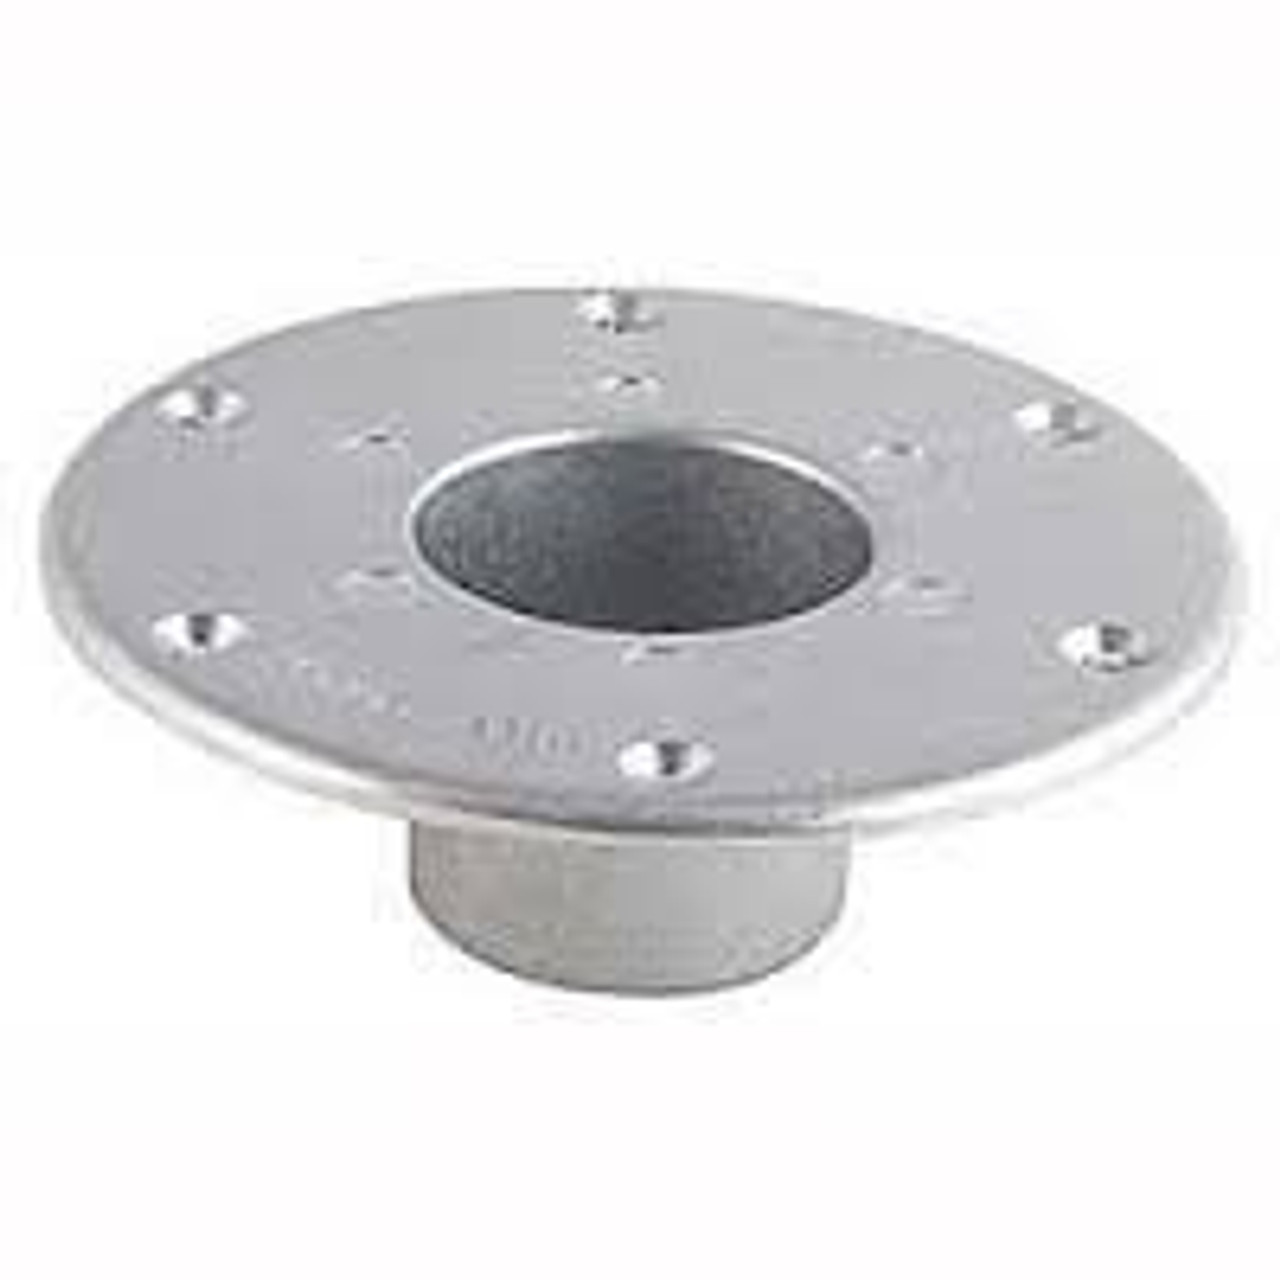 Flush Mount Base for mounting into floor